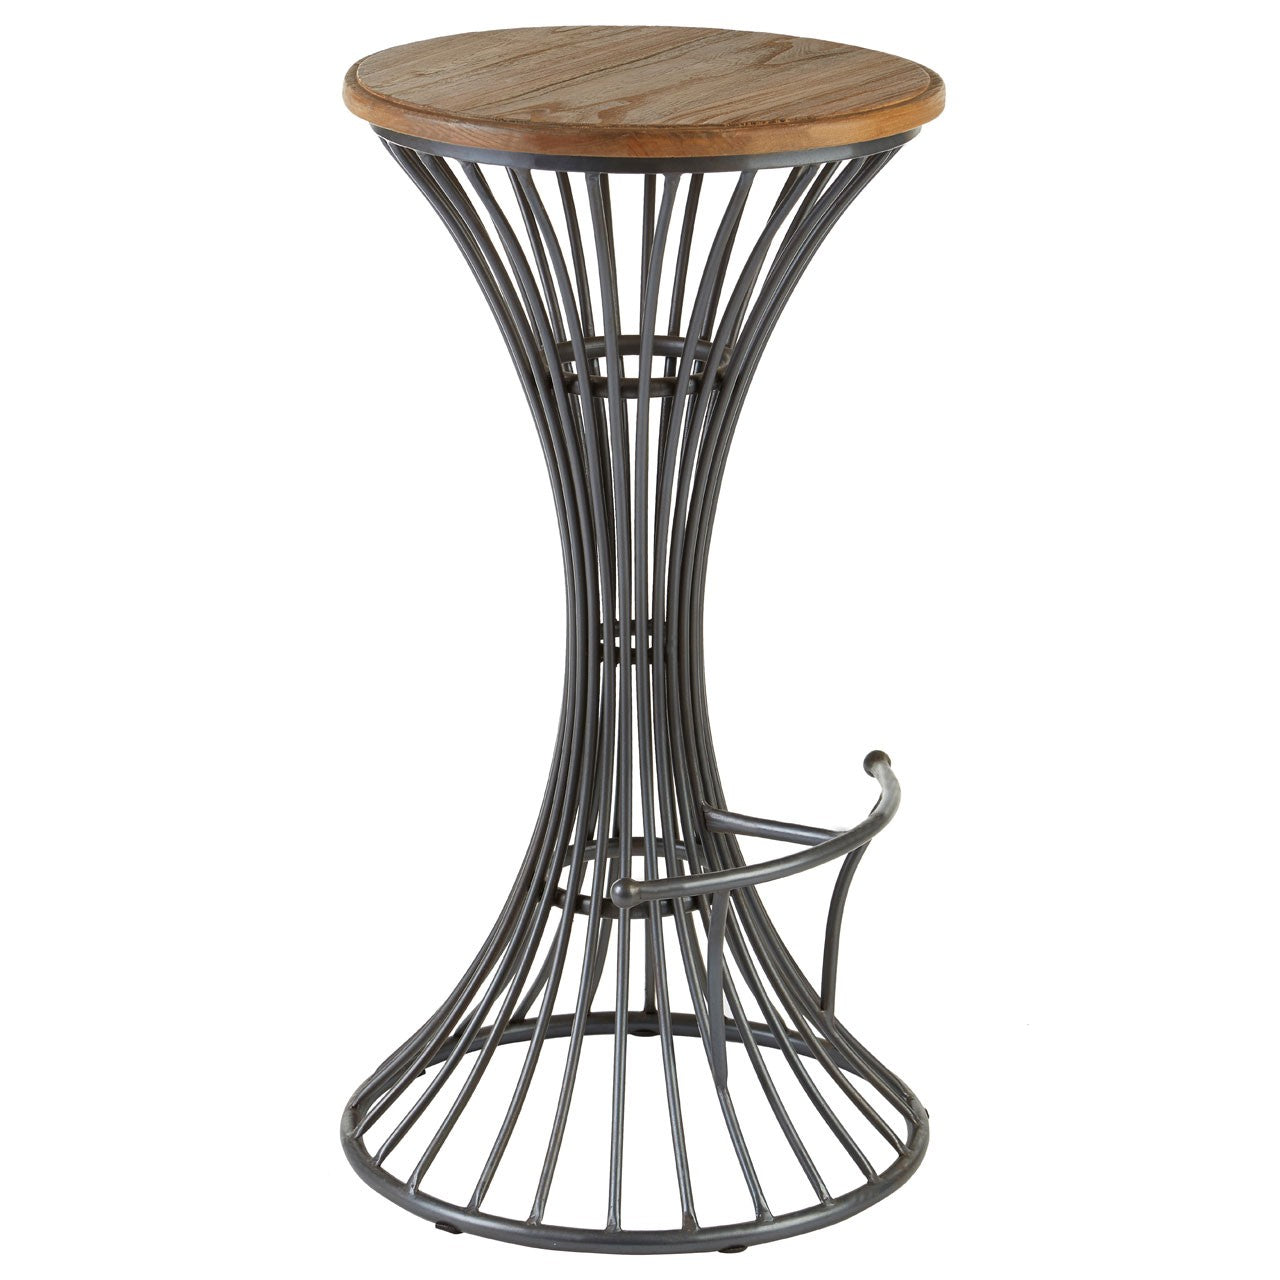 New Foundry Bar Stool (Concave Design)